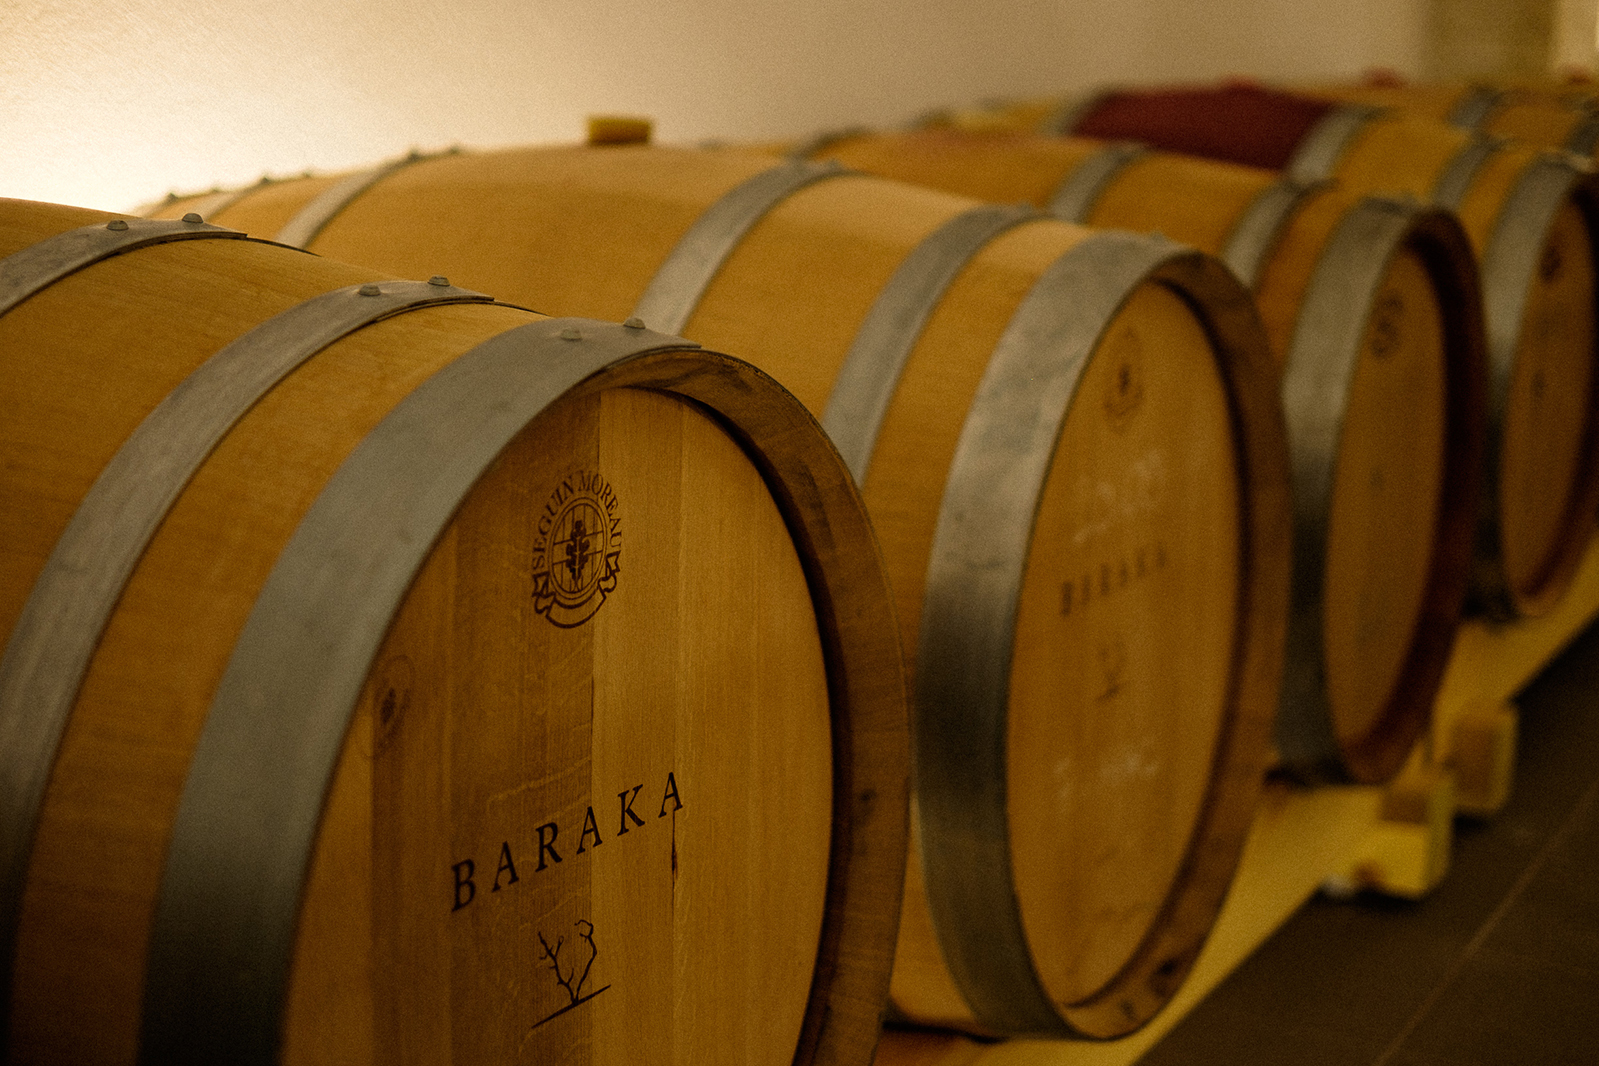 Winemaking in Dalmatia Croatia